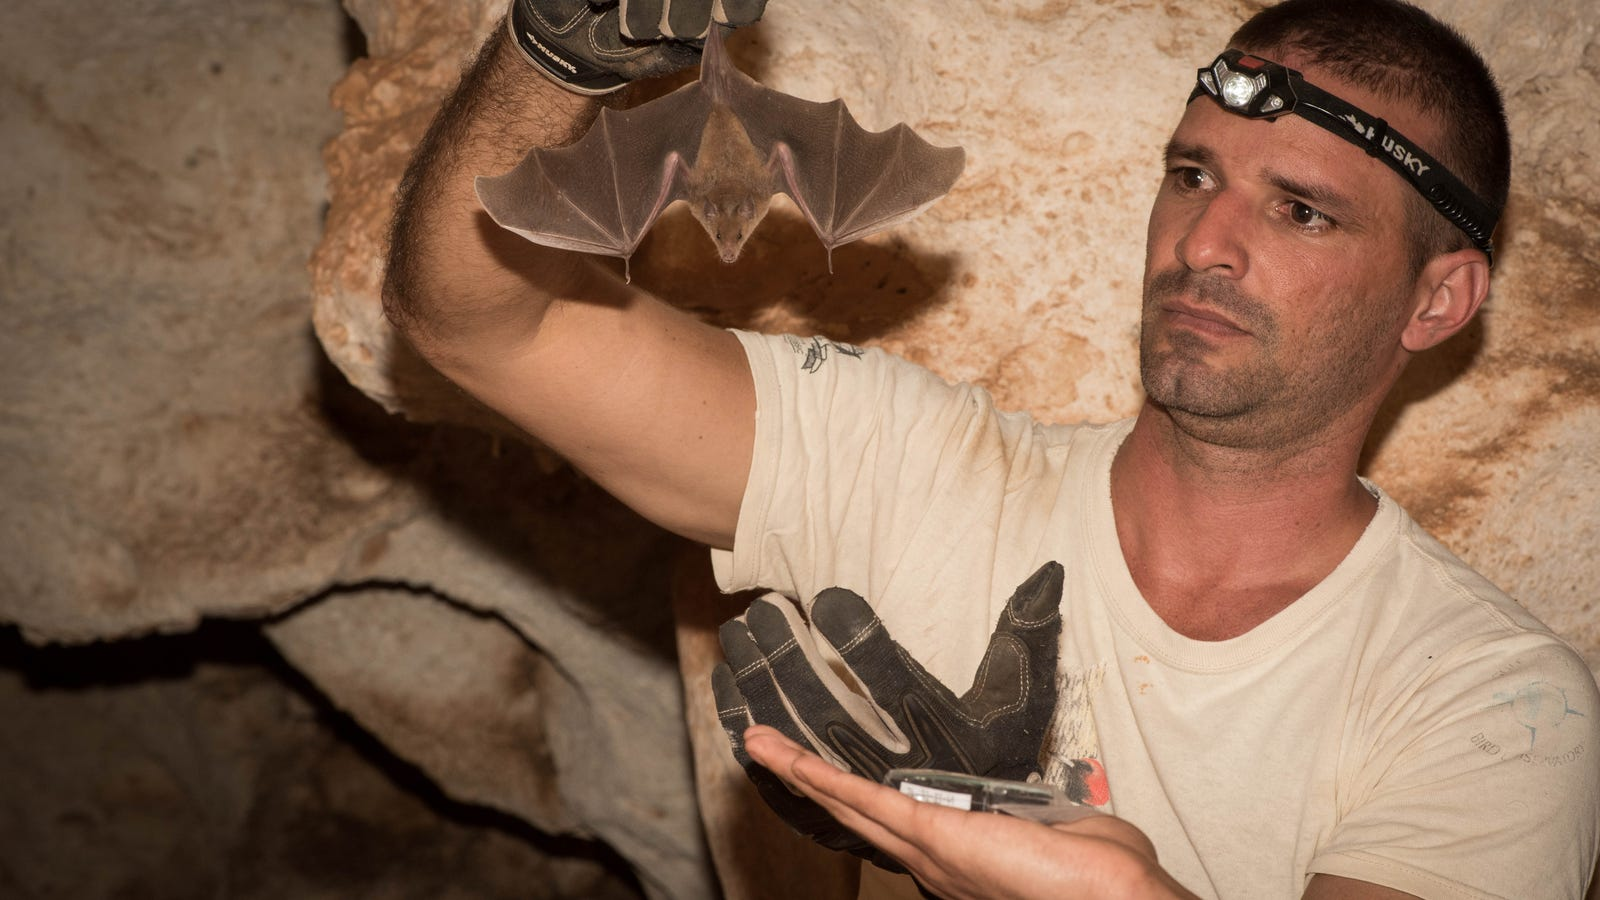 Scientists Gave One of the World's Rarest Bats a Manicure to Help Save It